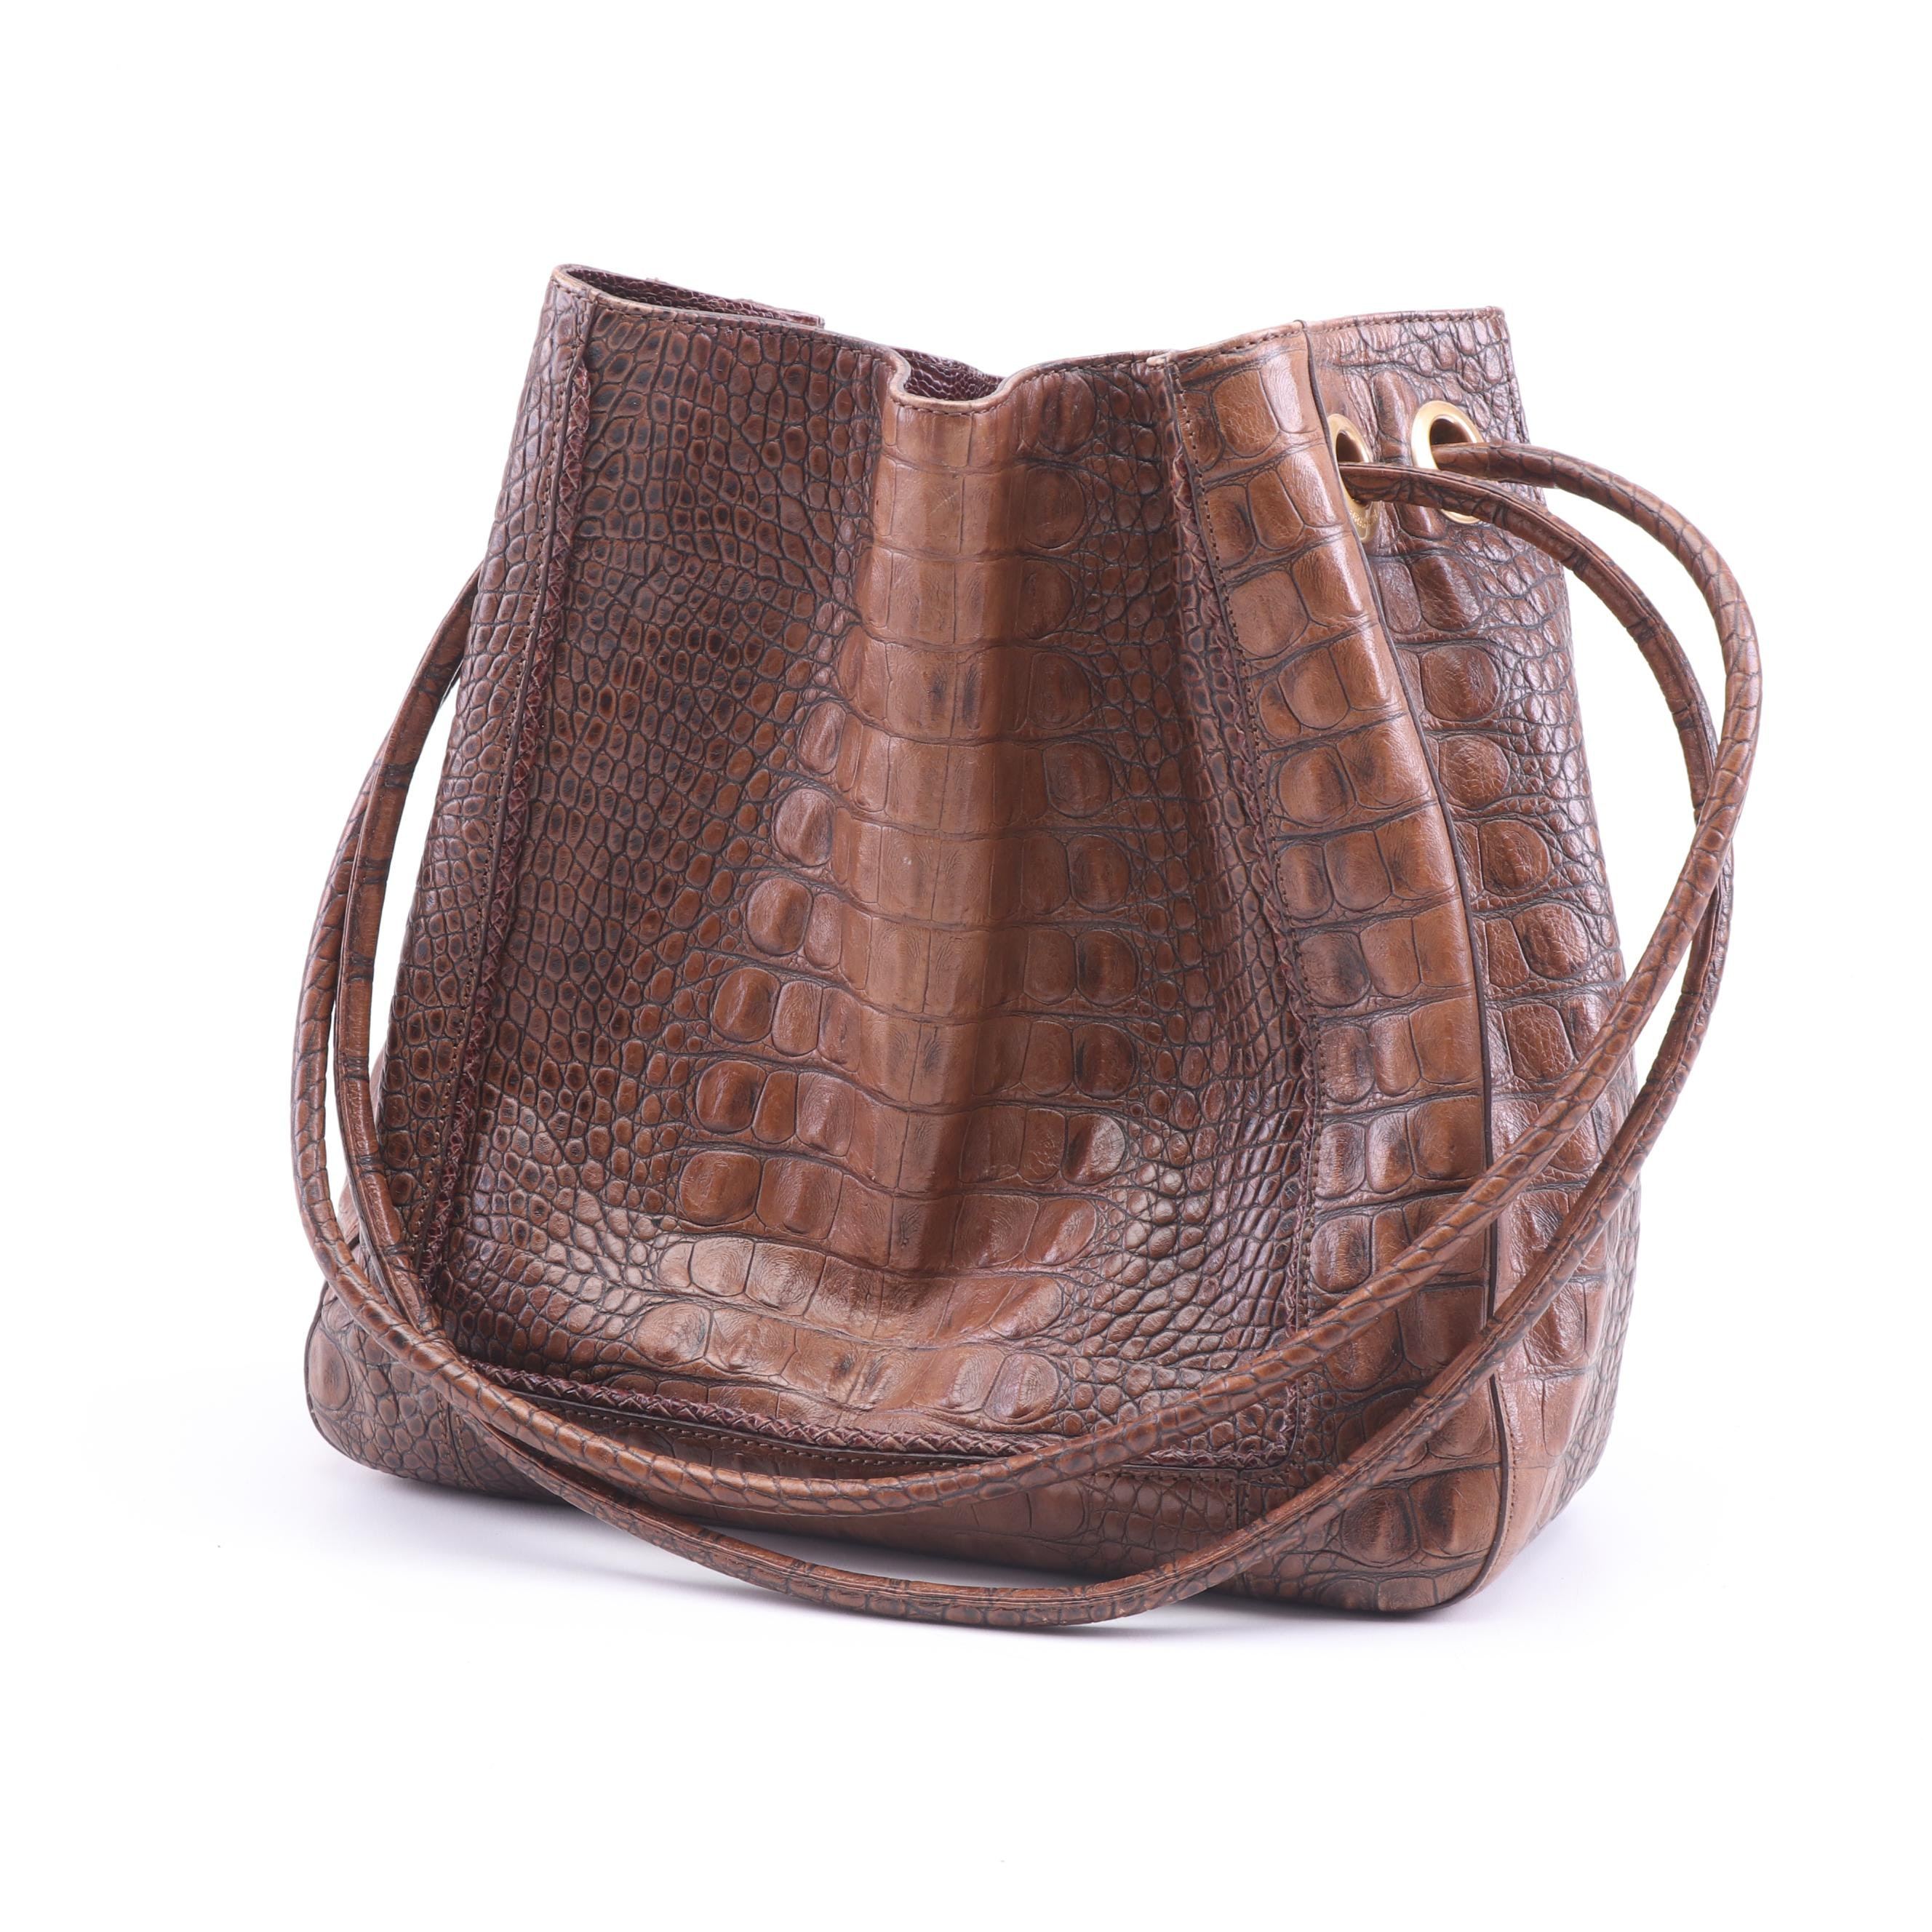 Brahmin Crocodile Embossed Brown Leather Bucket Shoulder Bag